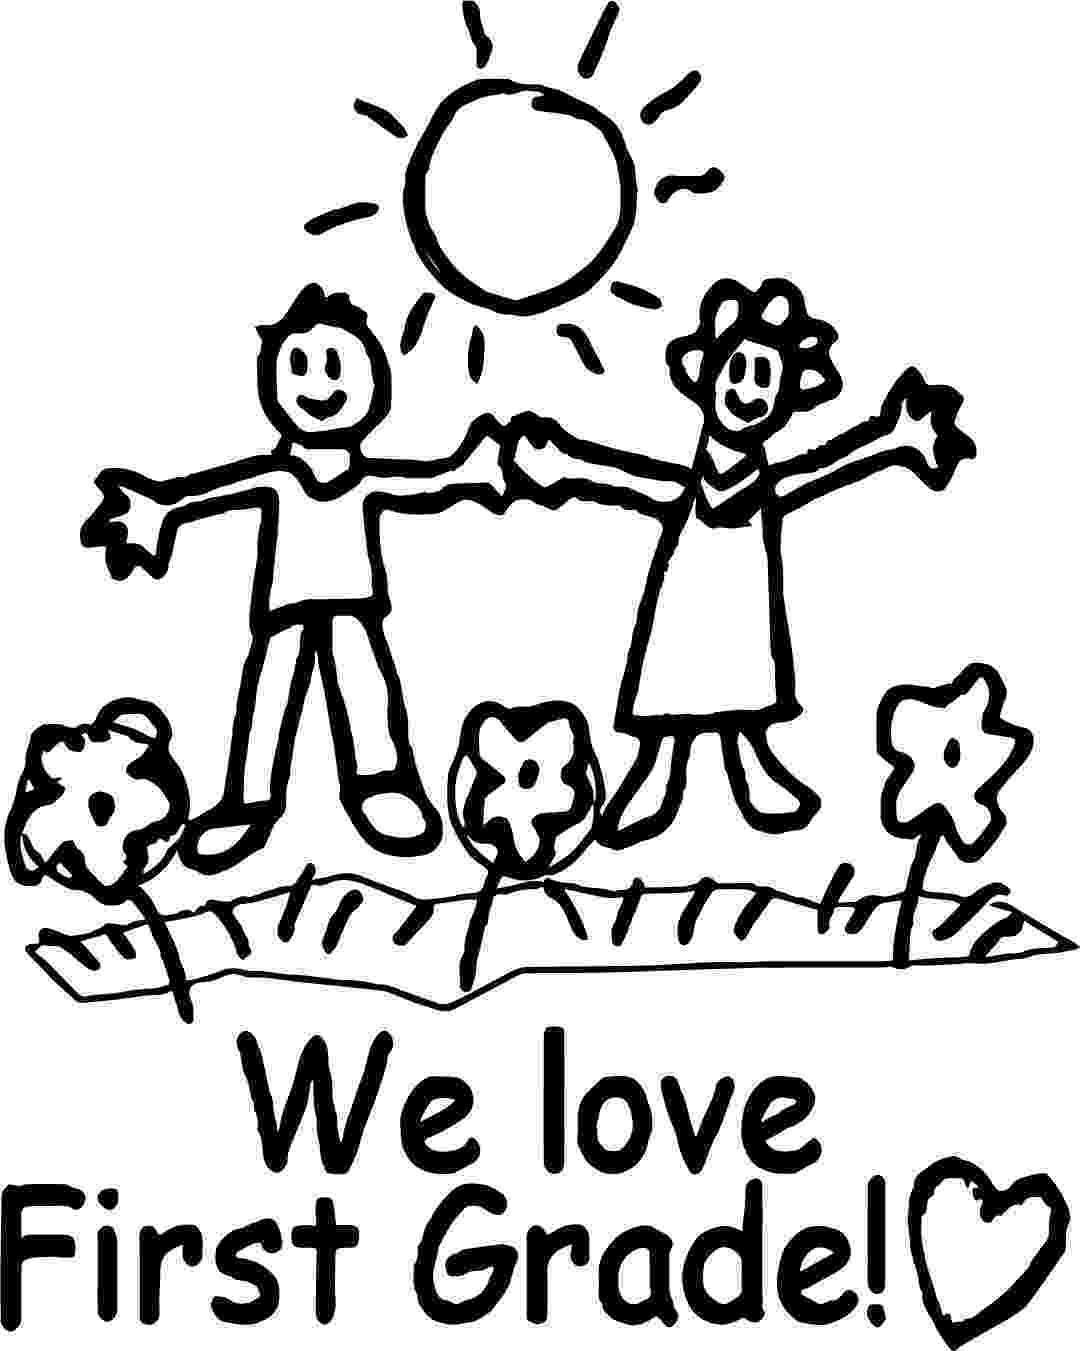 coloring pages for second graders 38 best images about rekenen sommenkleurplaat on coloring second for graders pages